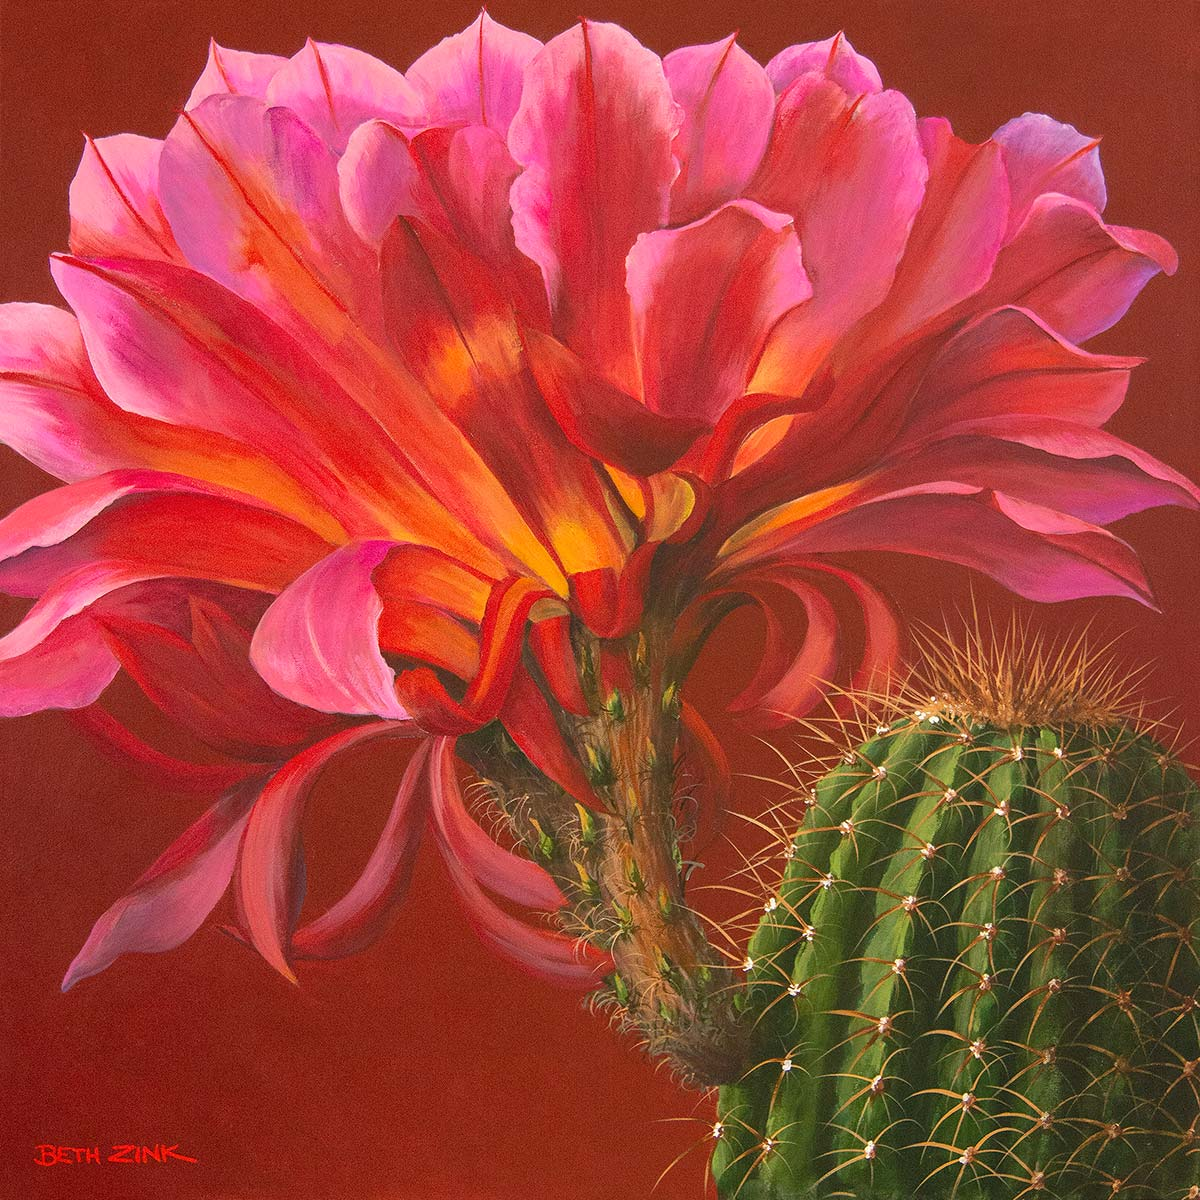 beth zink painting cactus with large pink flower